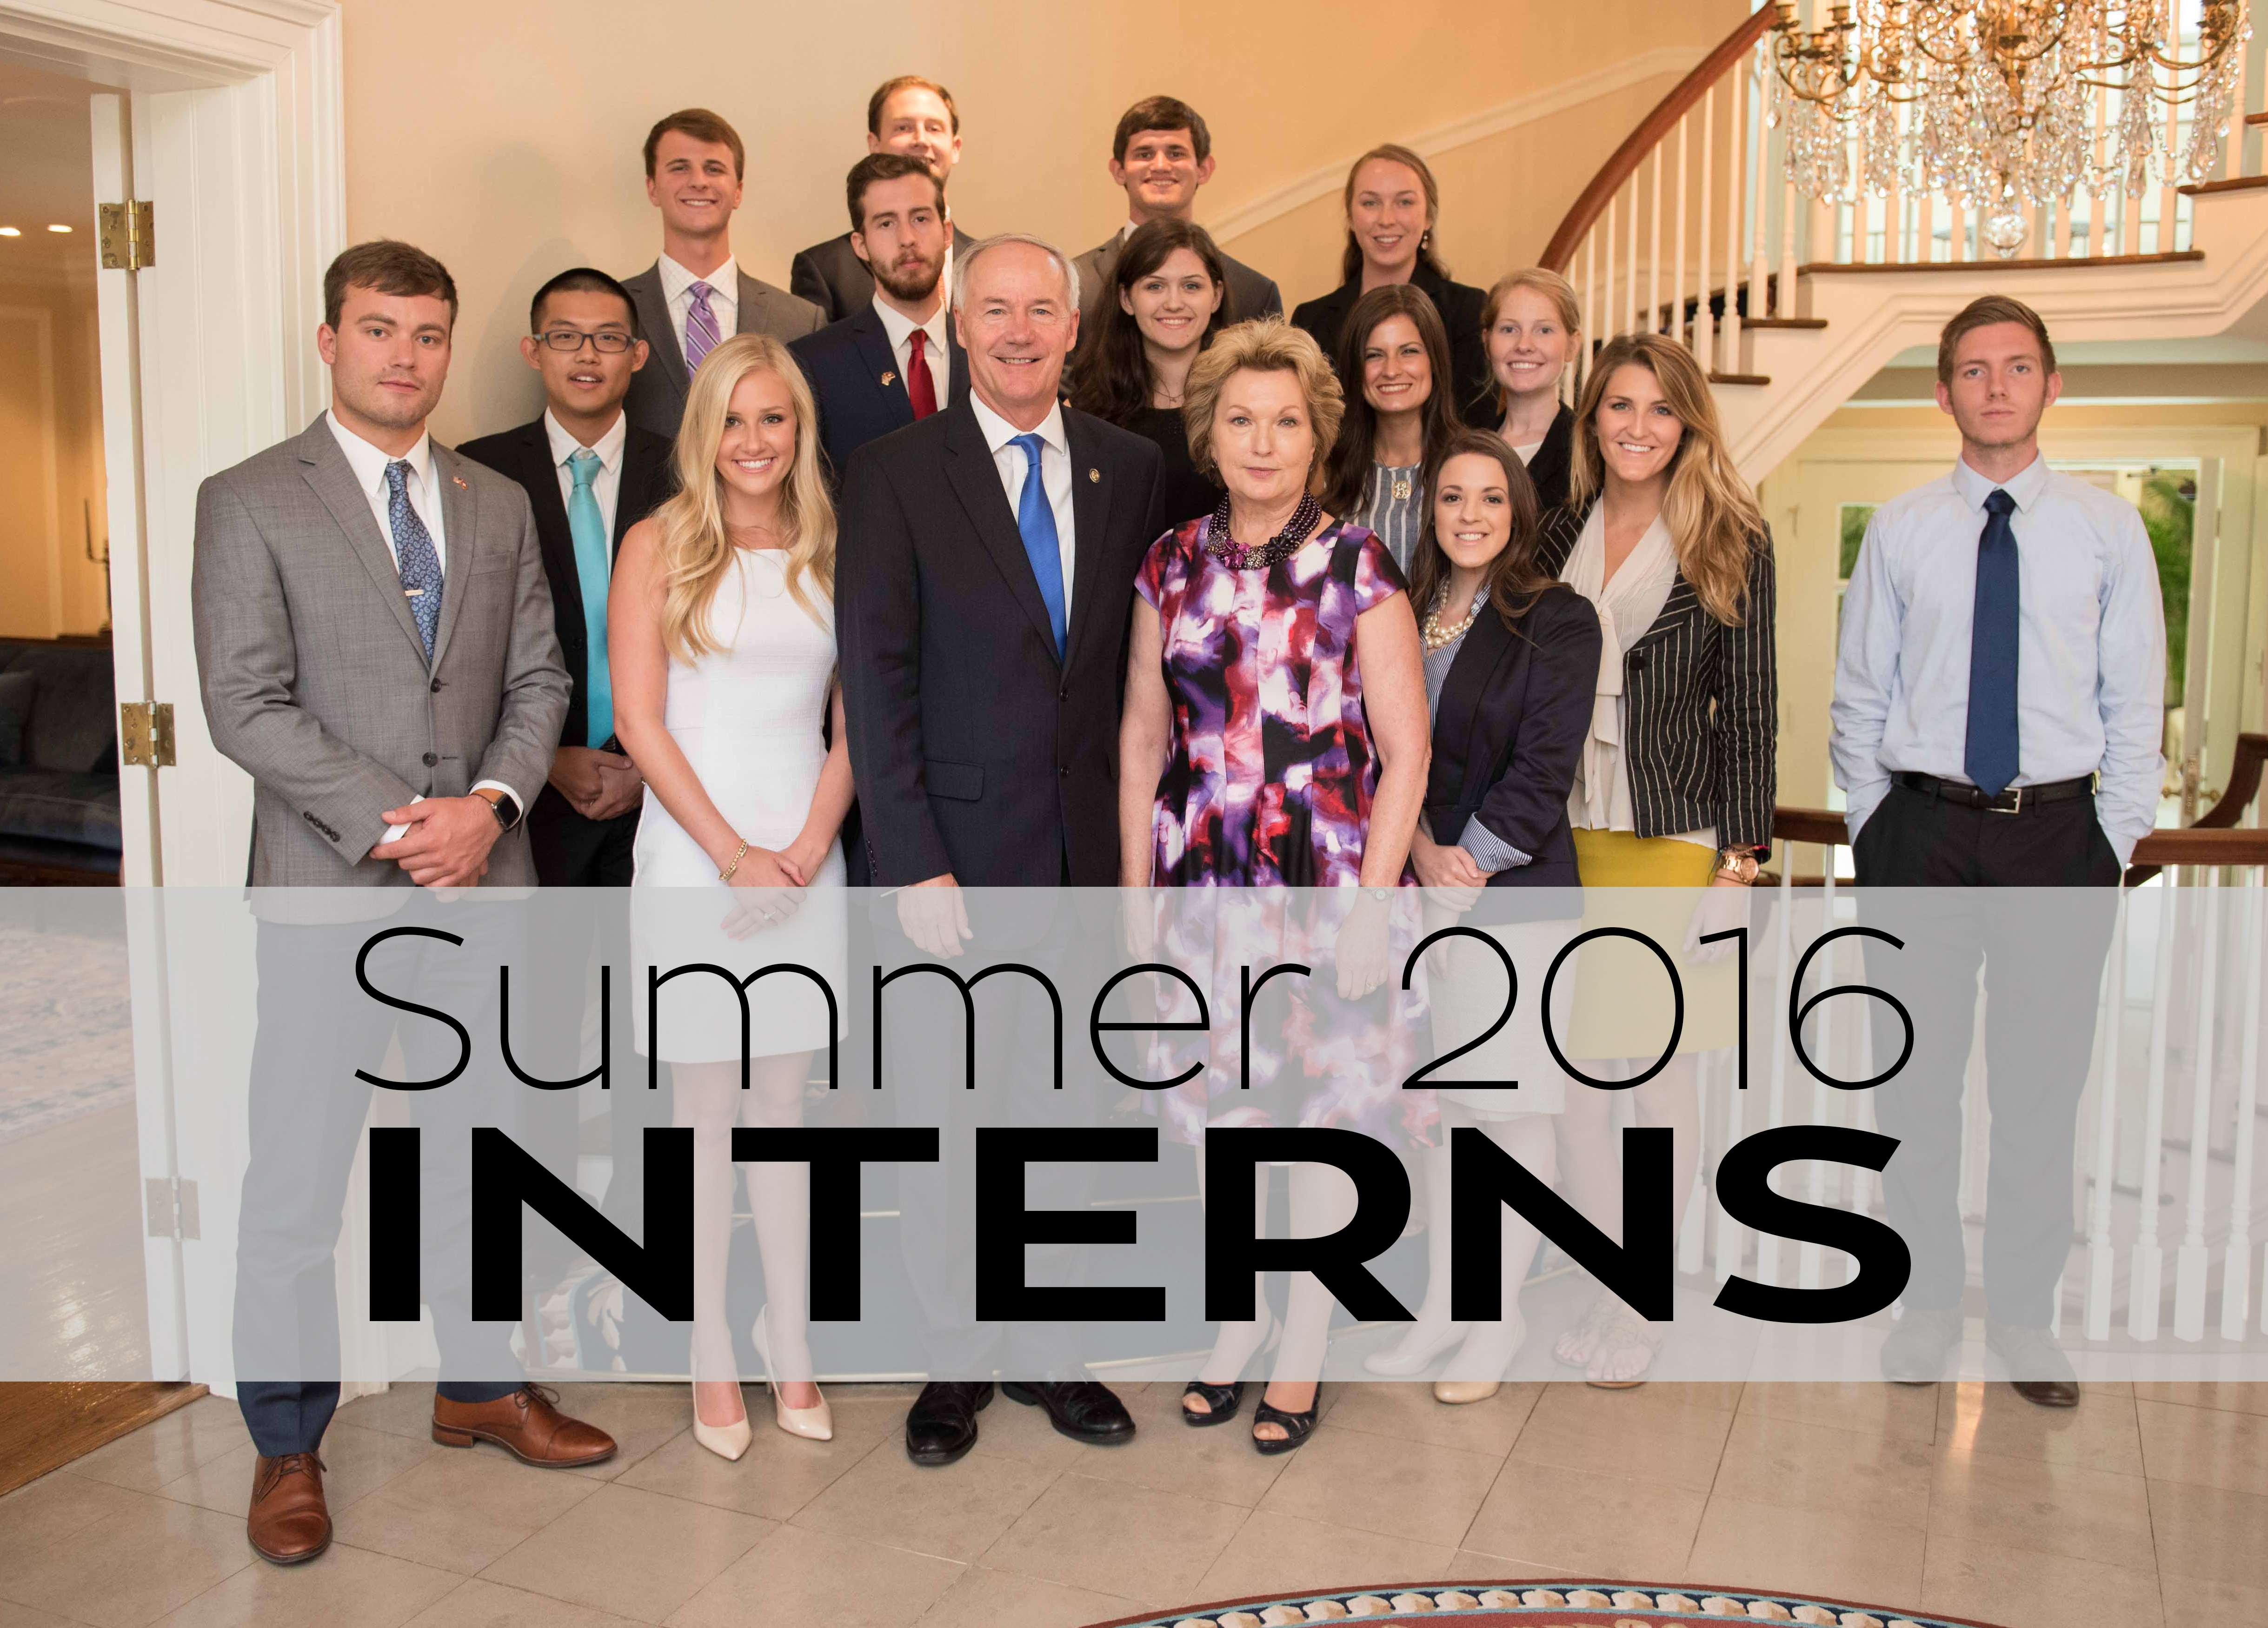 Summer 2016 Interns